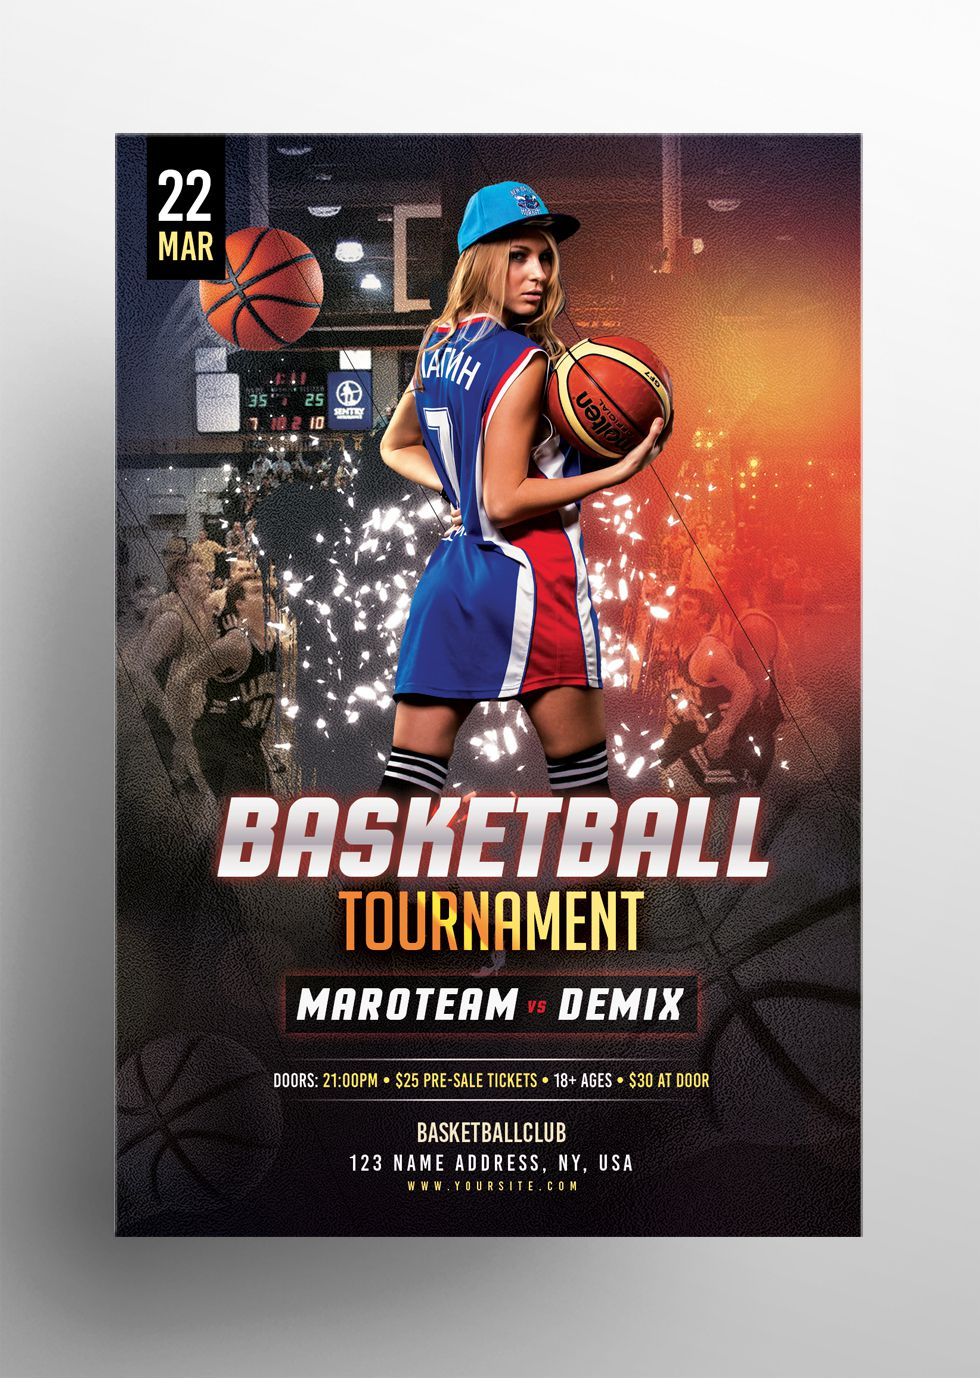 006 Top Basketball Tournament Flyer Template Photo  3 On FreeFull